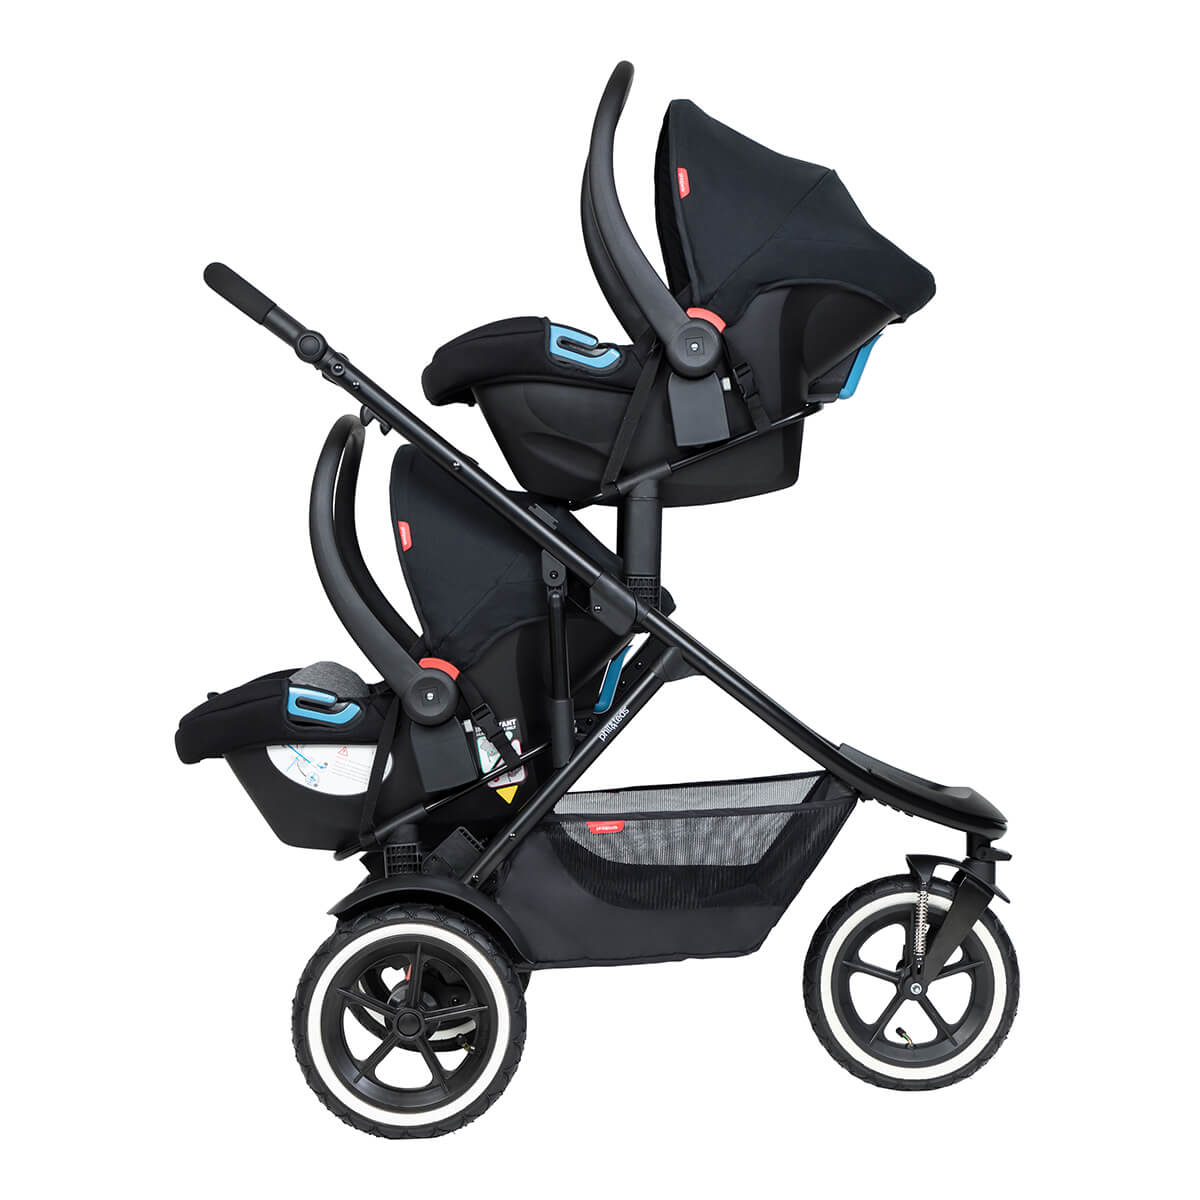 https://cdn.accentuate.io/4513462419552/19440099983544/philteds-sport-buggy-with-double-alpha-travel-system-v1626486515311.jpg?1200x1200